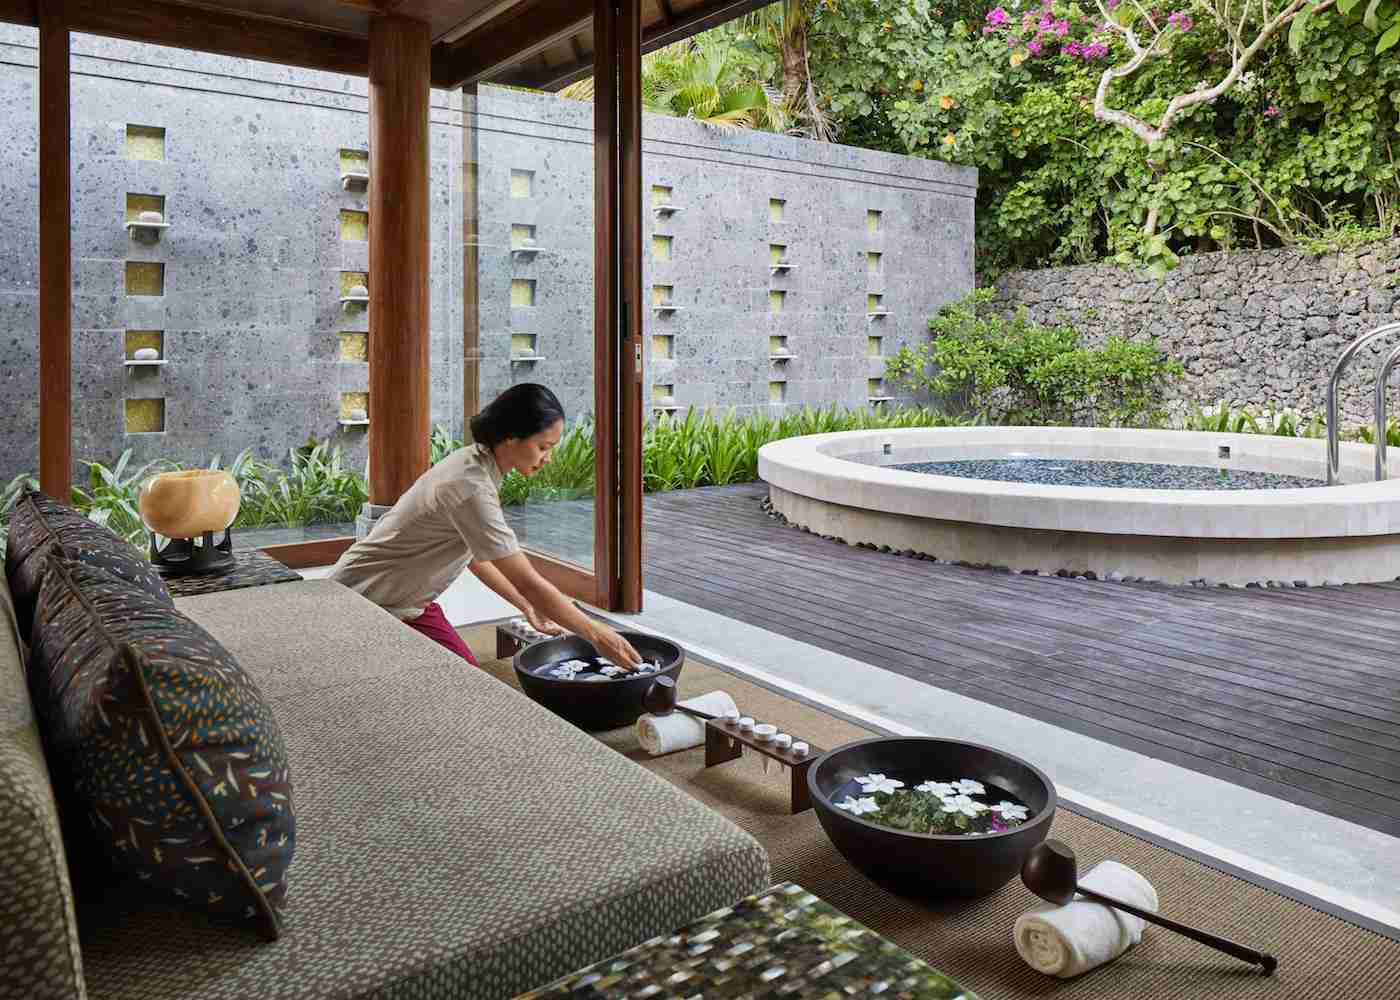 Hyatt Prive Benefits - Hyatt Regency Bali